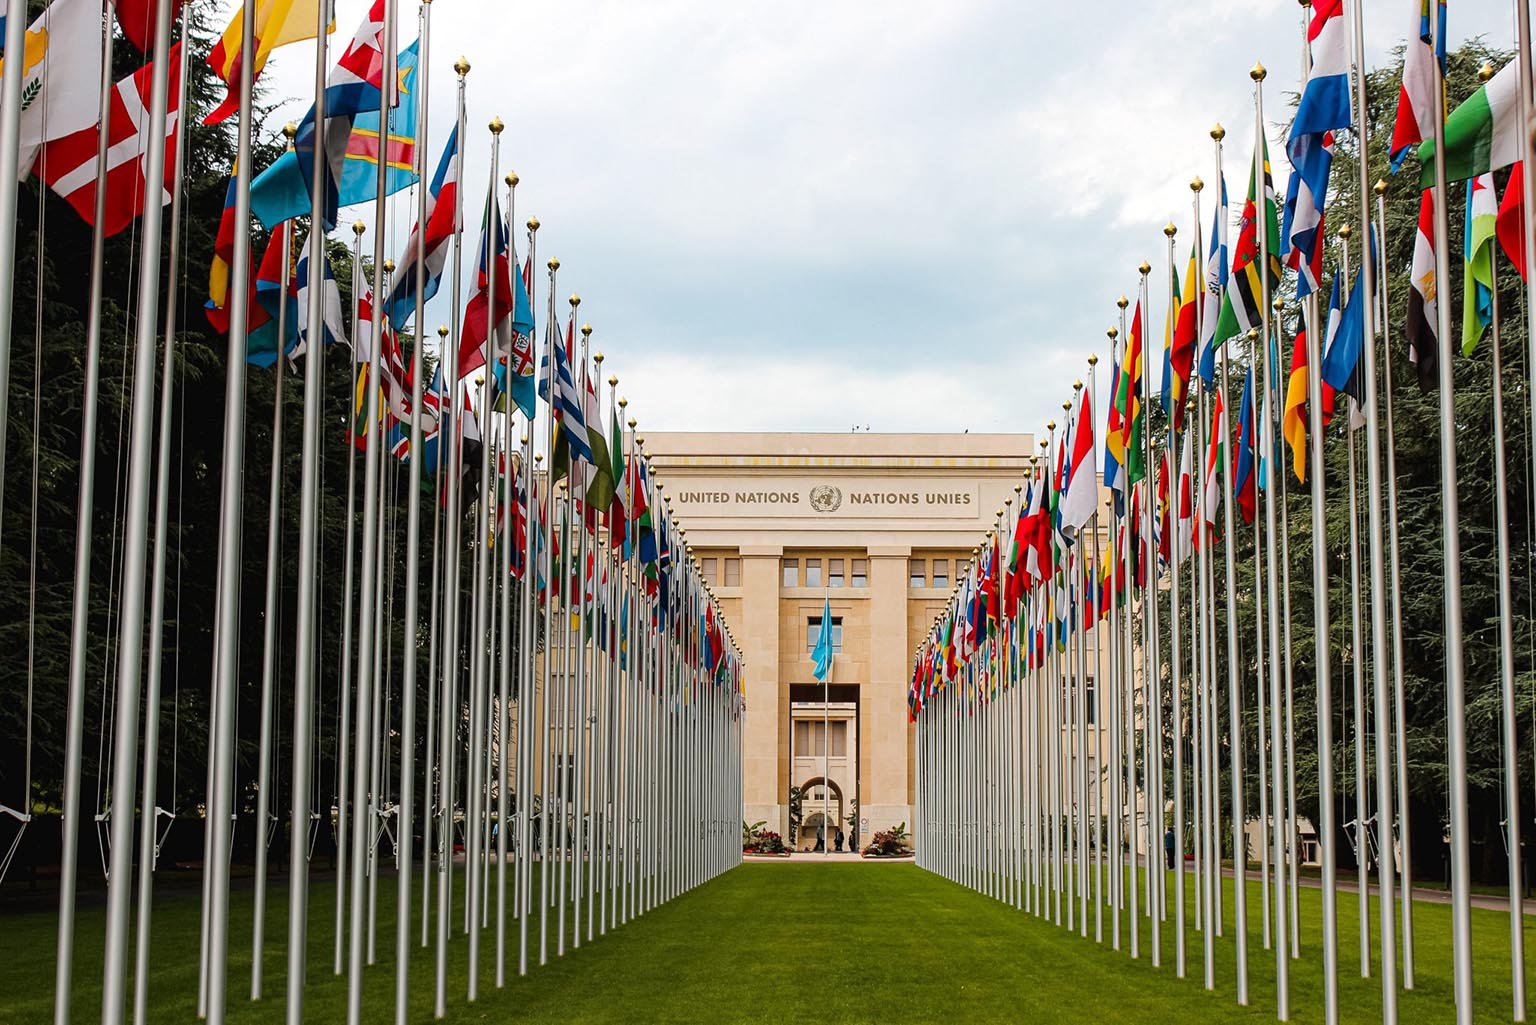 Countries flags leading up to the United Nations building in Geneva